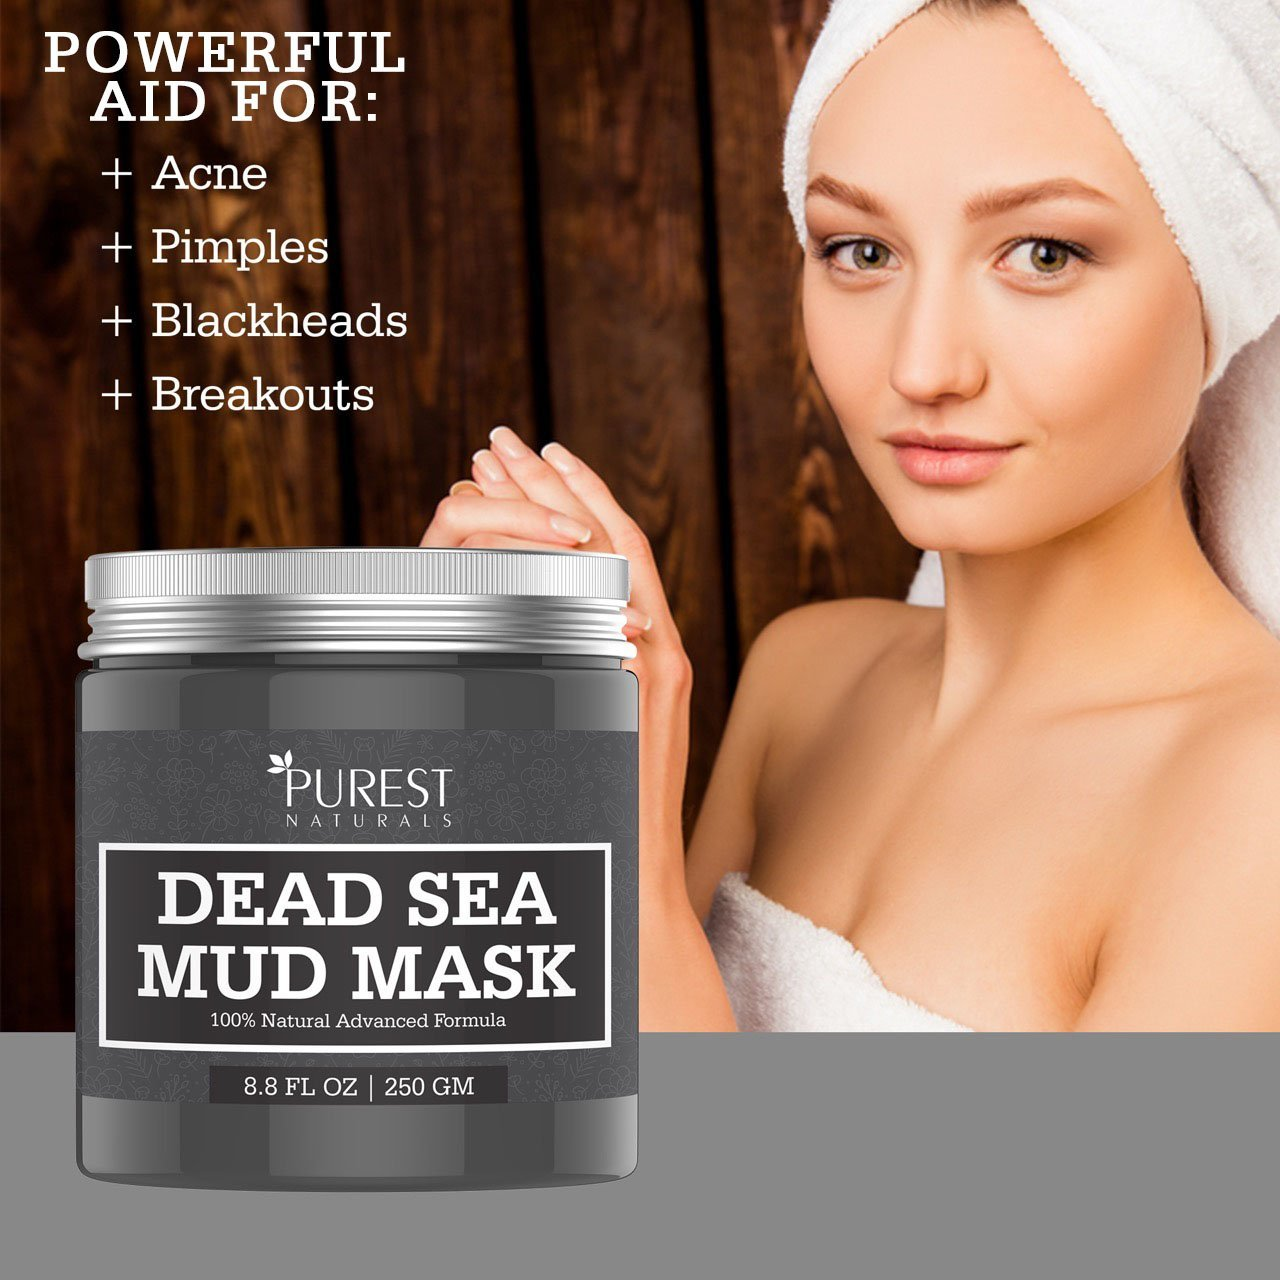 DEAD SEA MUD MASK - Skin Cleanser for Acne Pores and Wrinkles (*) ACNE THERAPY KIT *Choose your Size* Face Cleanser Blemish Skin Care Oily Pores Blackheads Pimples Face Wash Toner Moisturizer (1 oz. Kit (no bag))